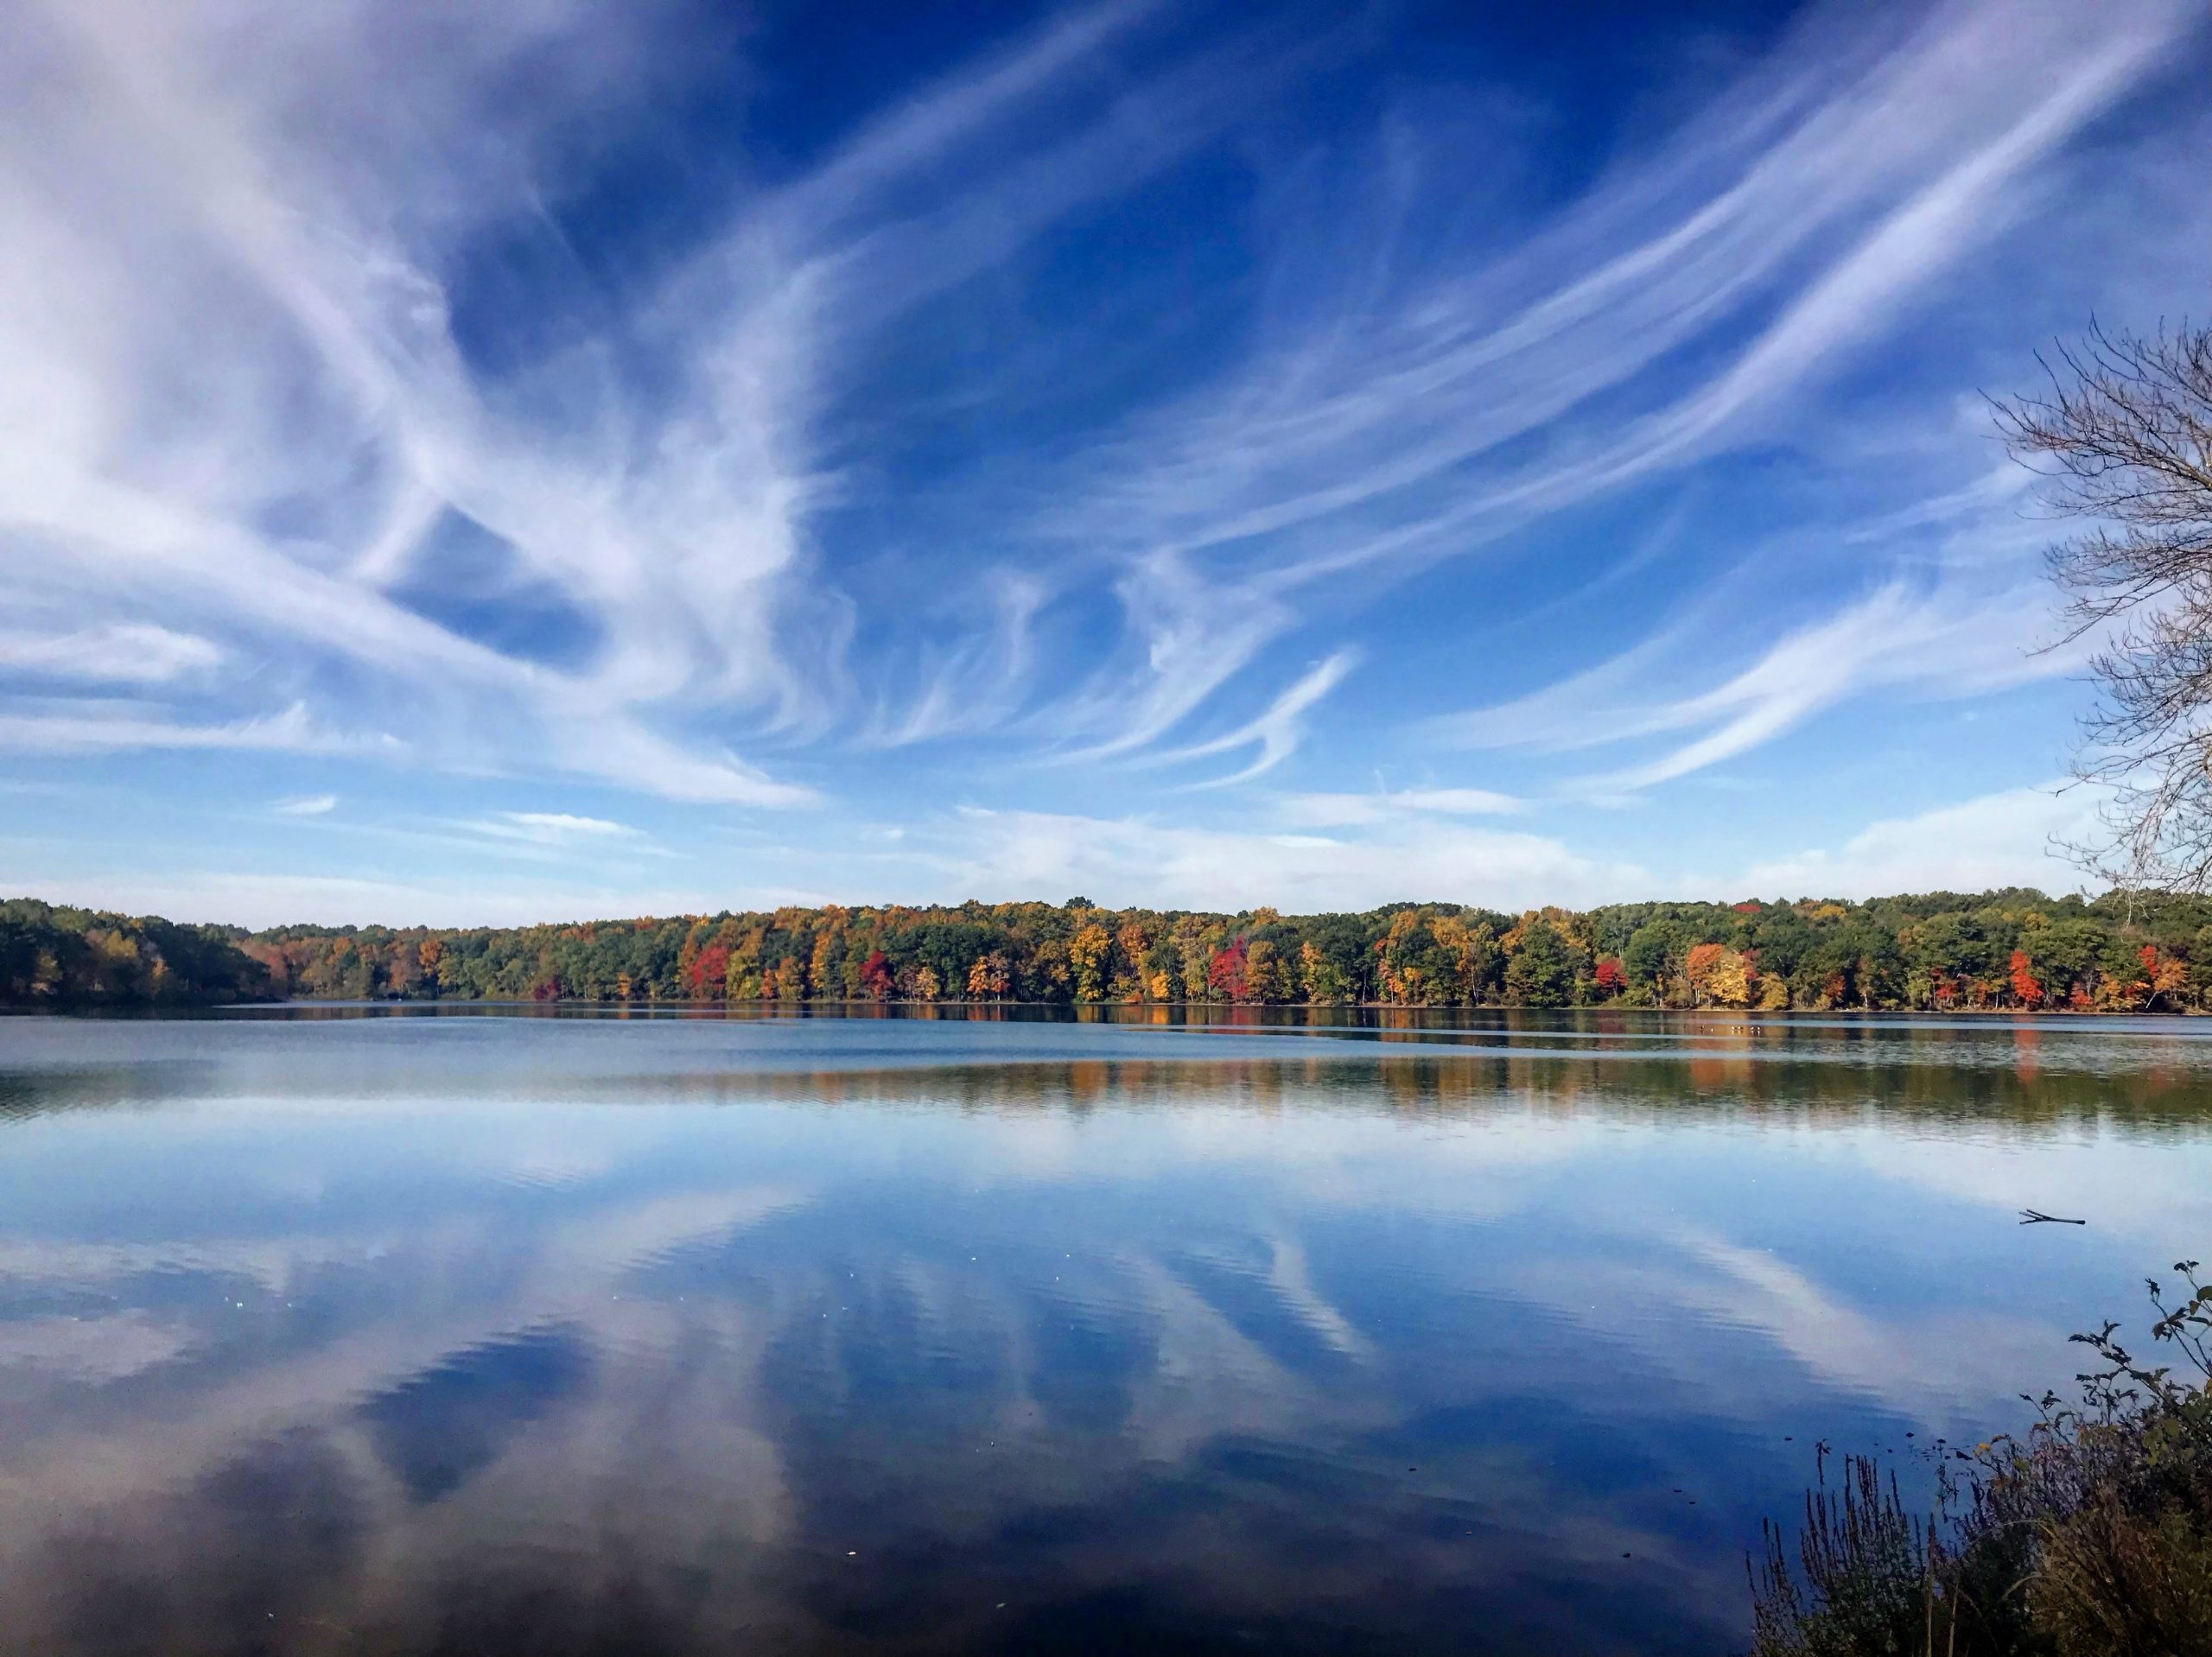 new england, things to do in New England, New England getaway, fall in New England